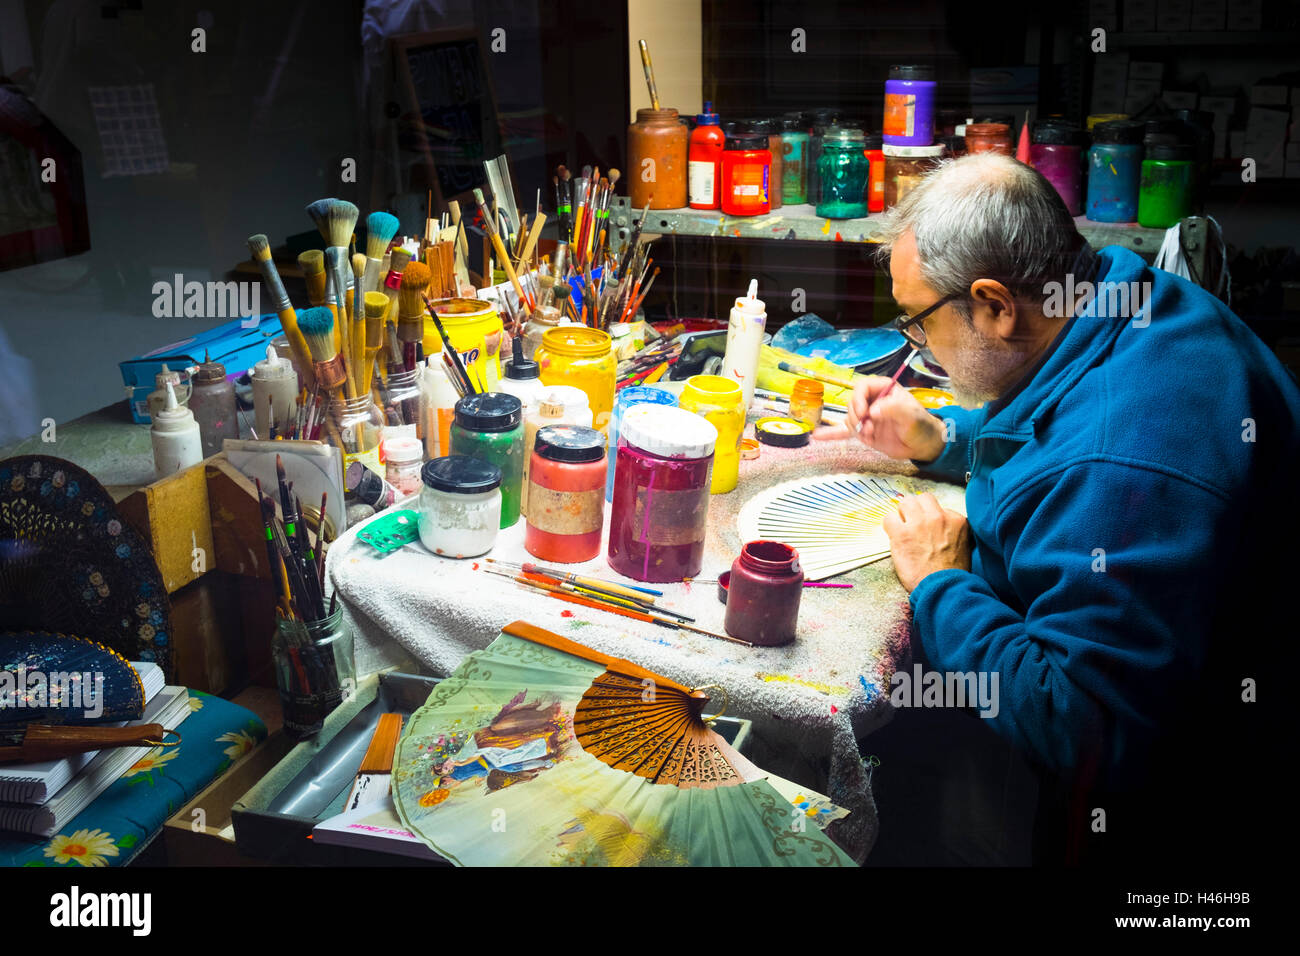 Craftsman hand decorating spanish fans in his workshop - Stock Image